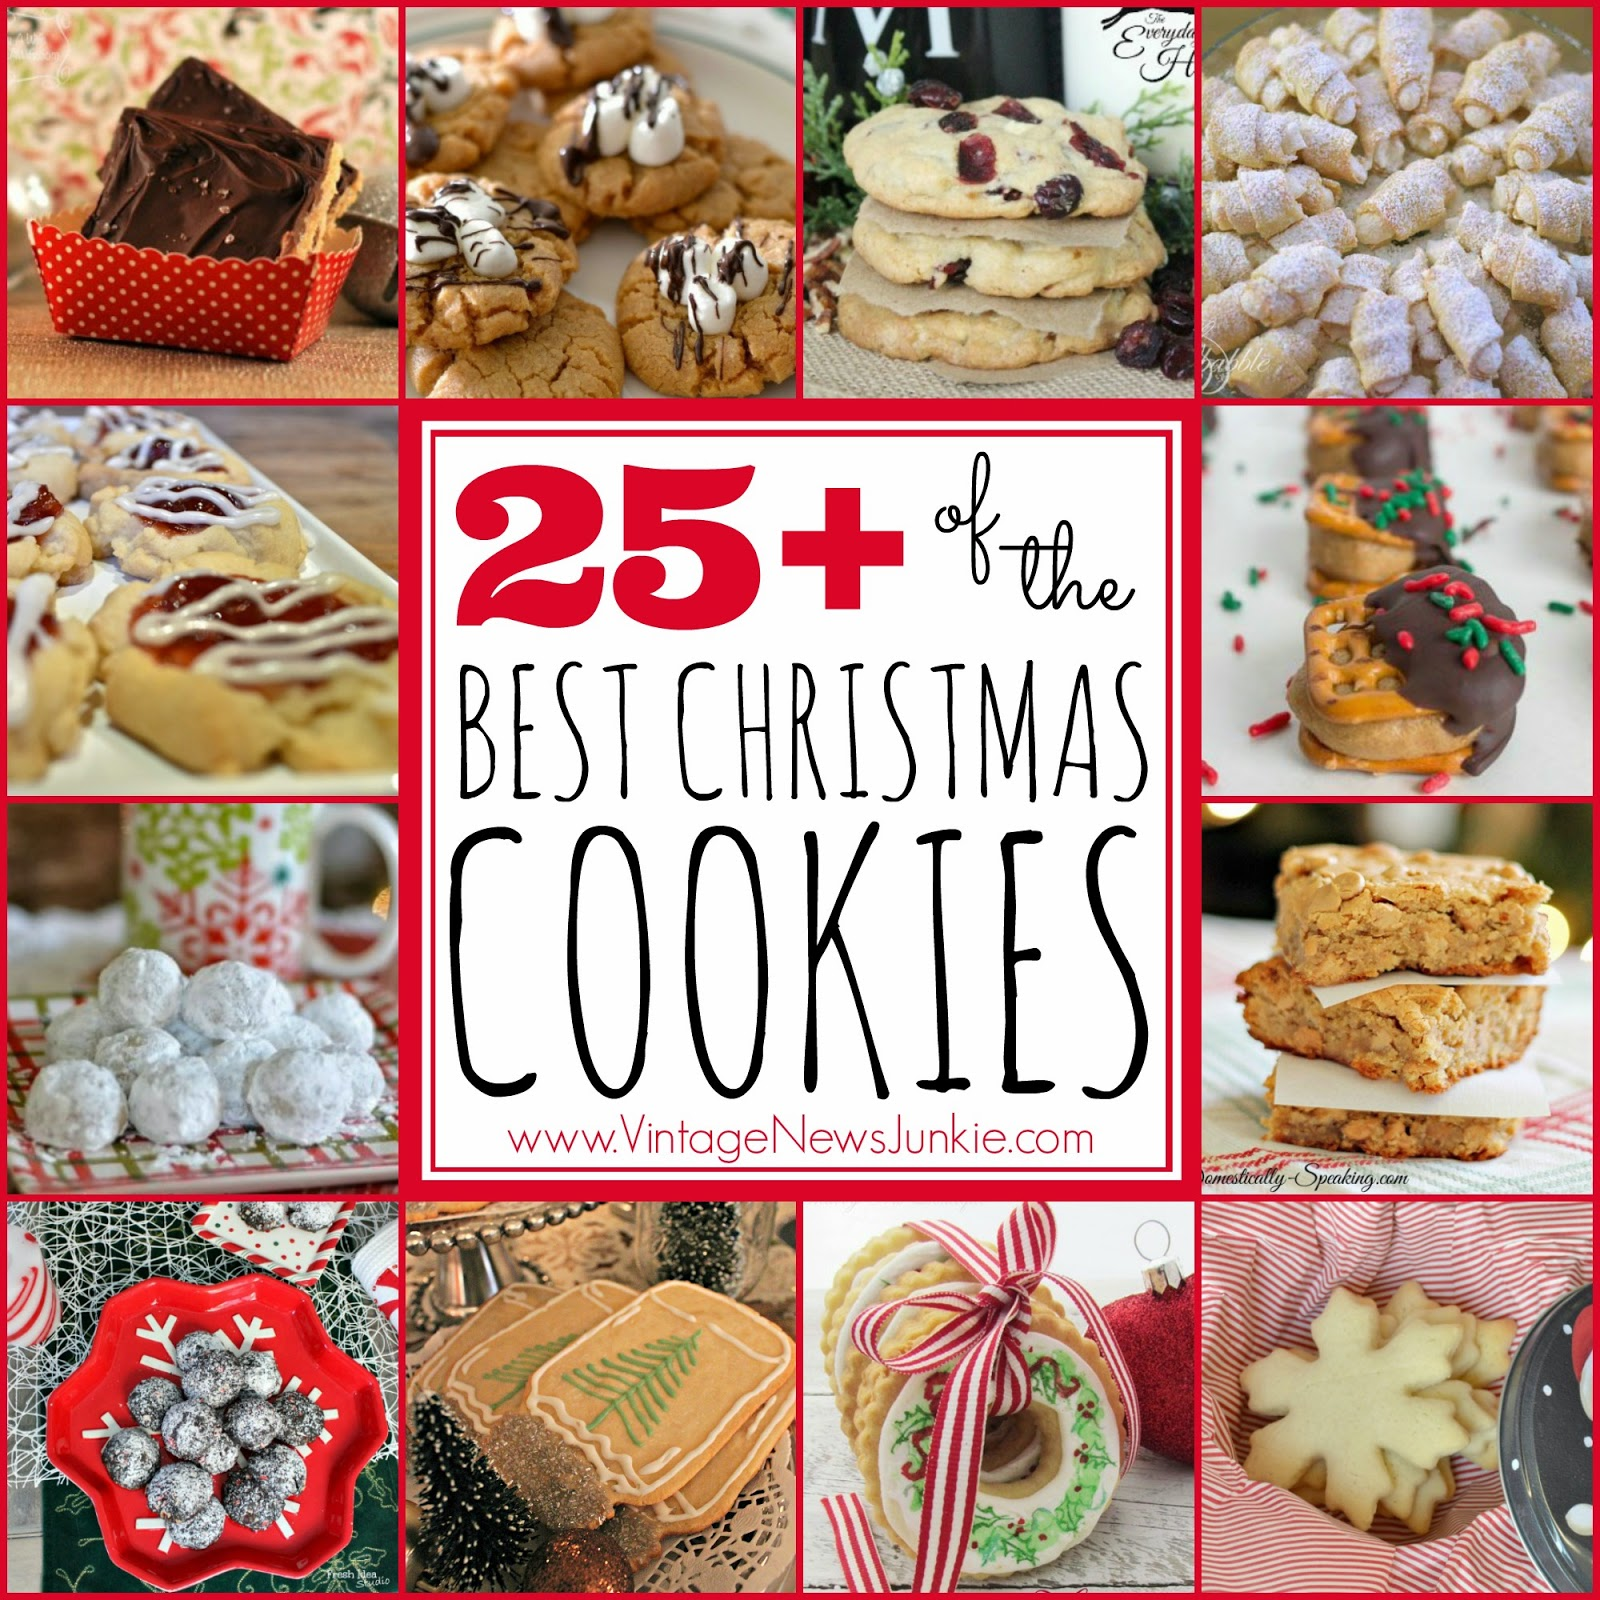 25+ OF THE BEST CHRISTMAS COOKIE RECIPES